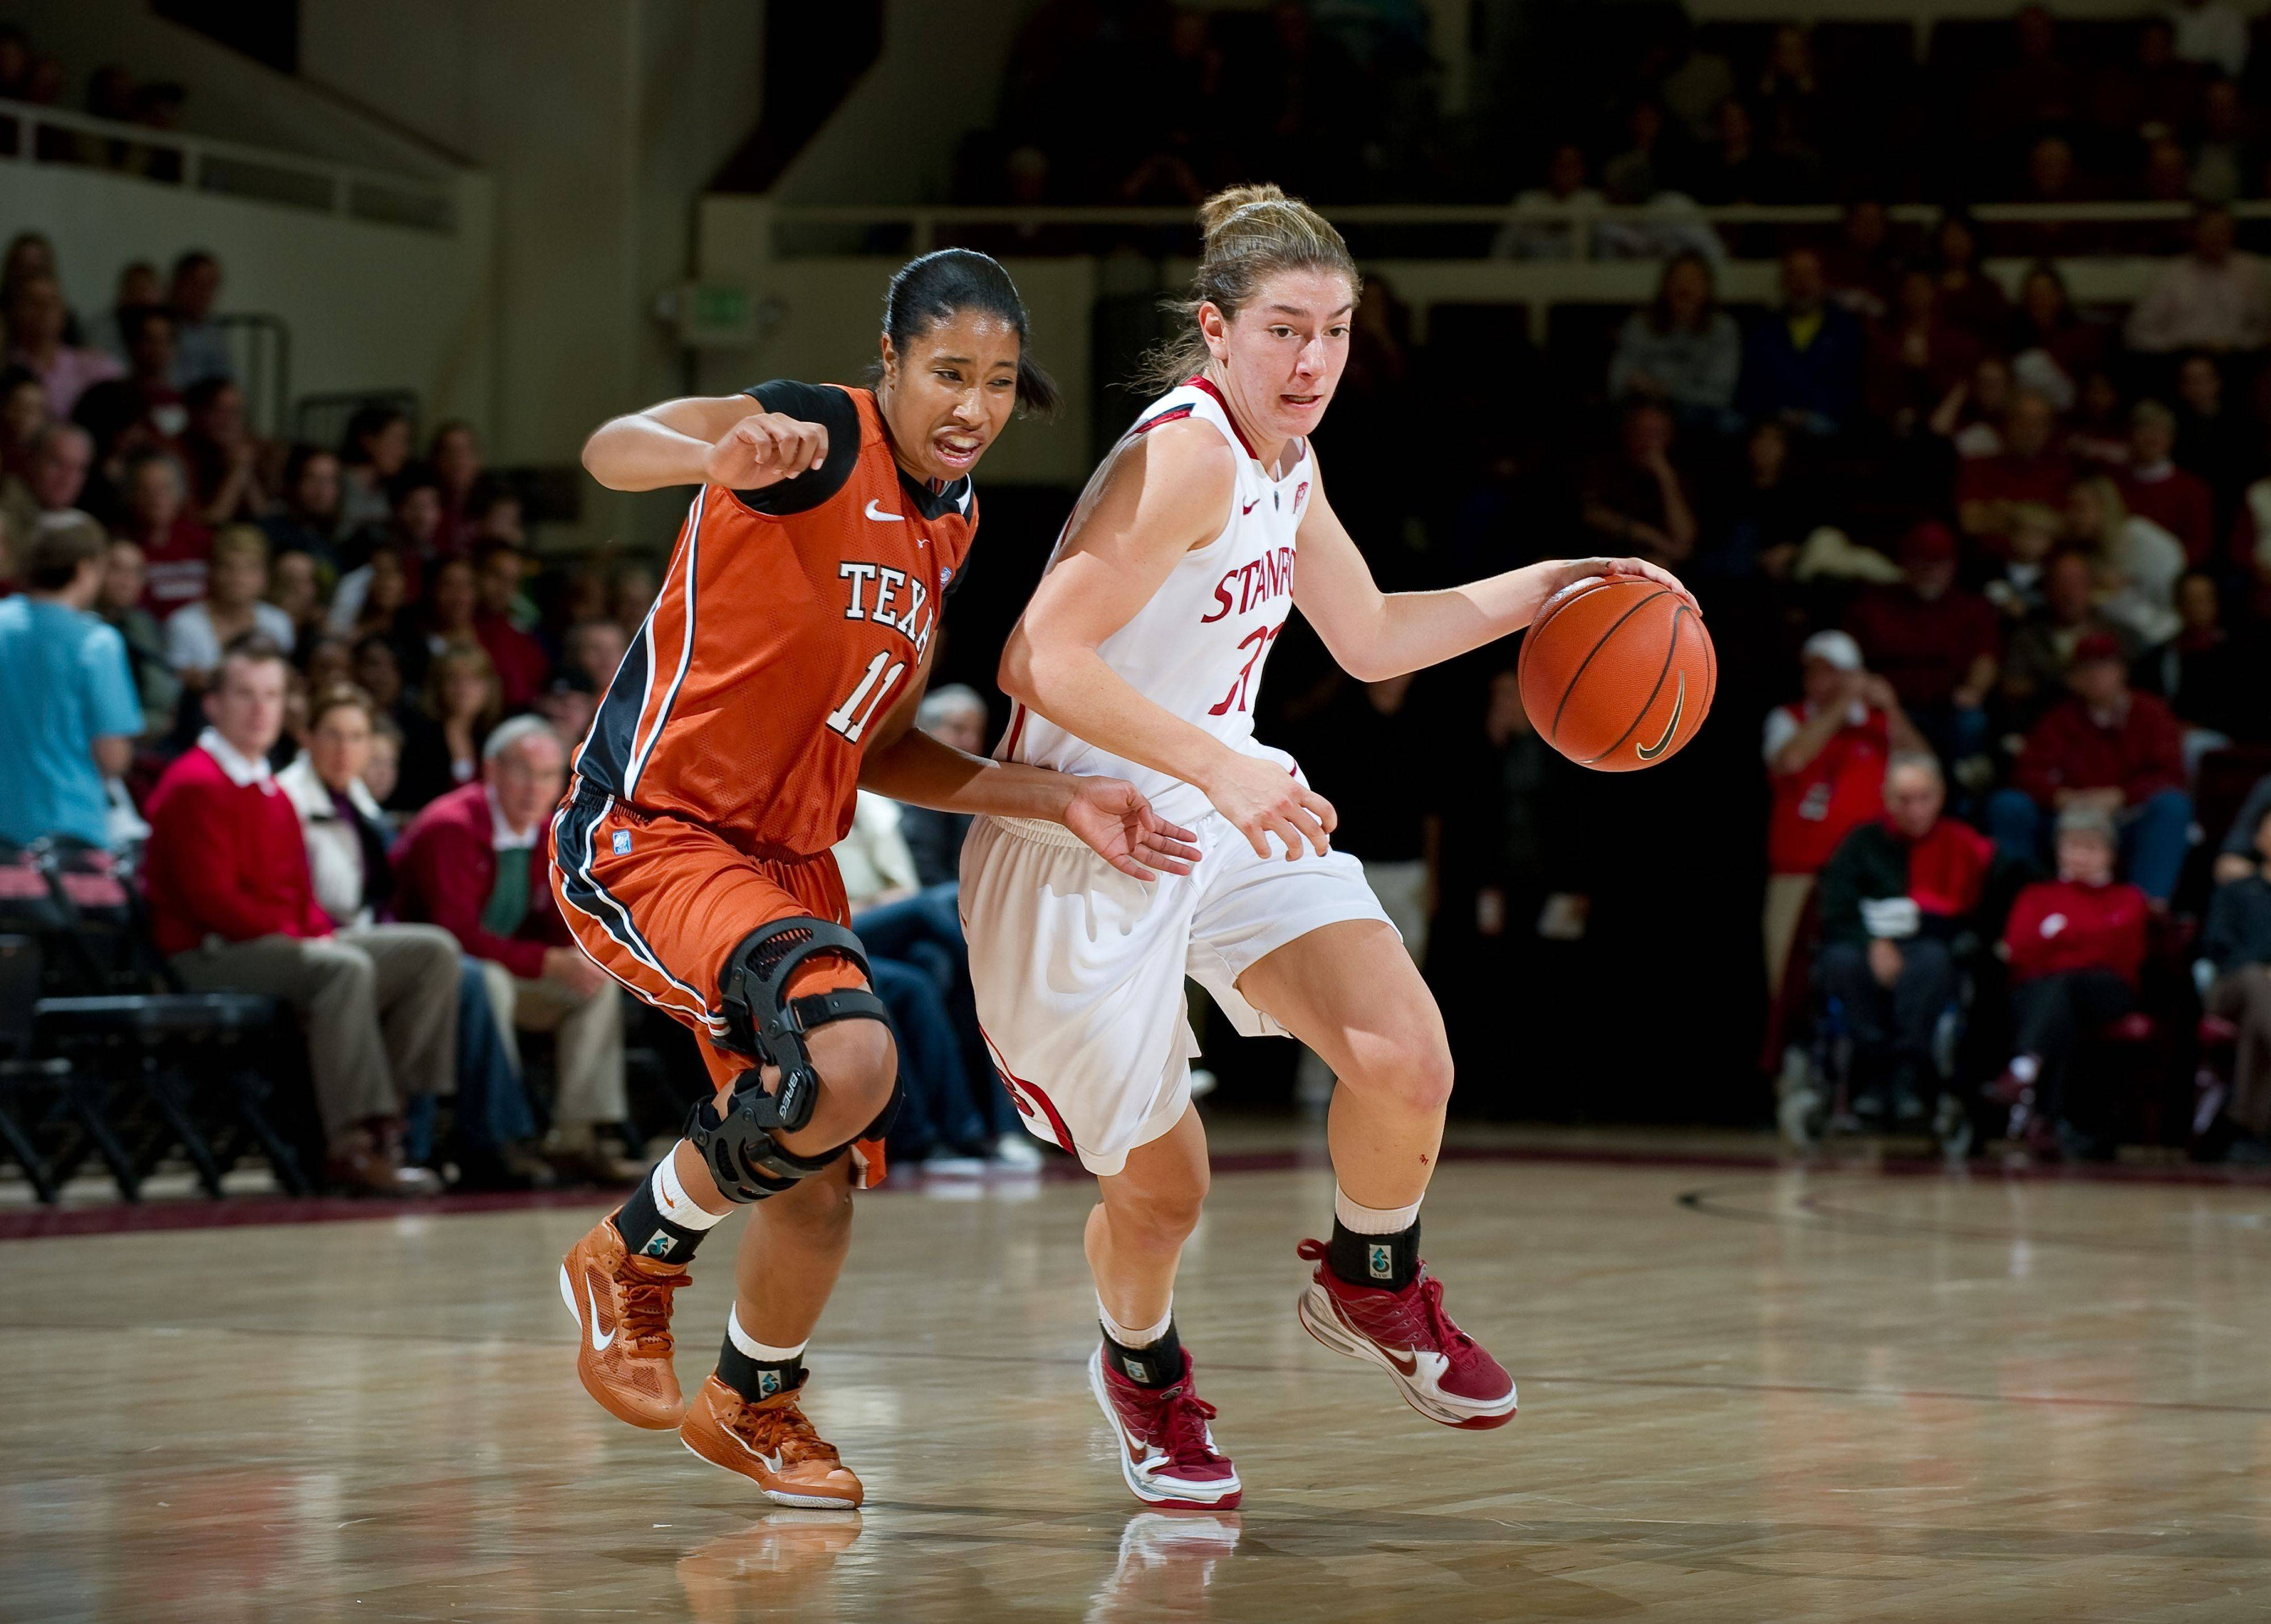 Hinsdale Central grad Toni Kokenis, right, helped Stanford to a 93-78 win over Texas earlier this season.